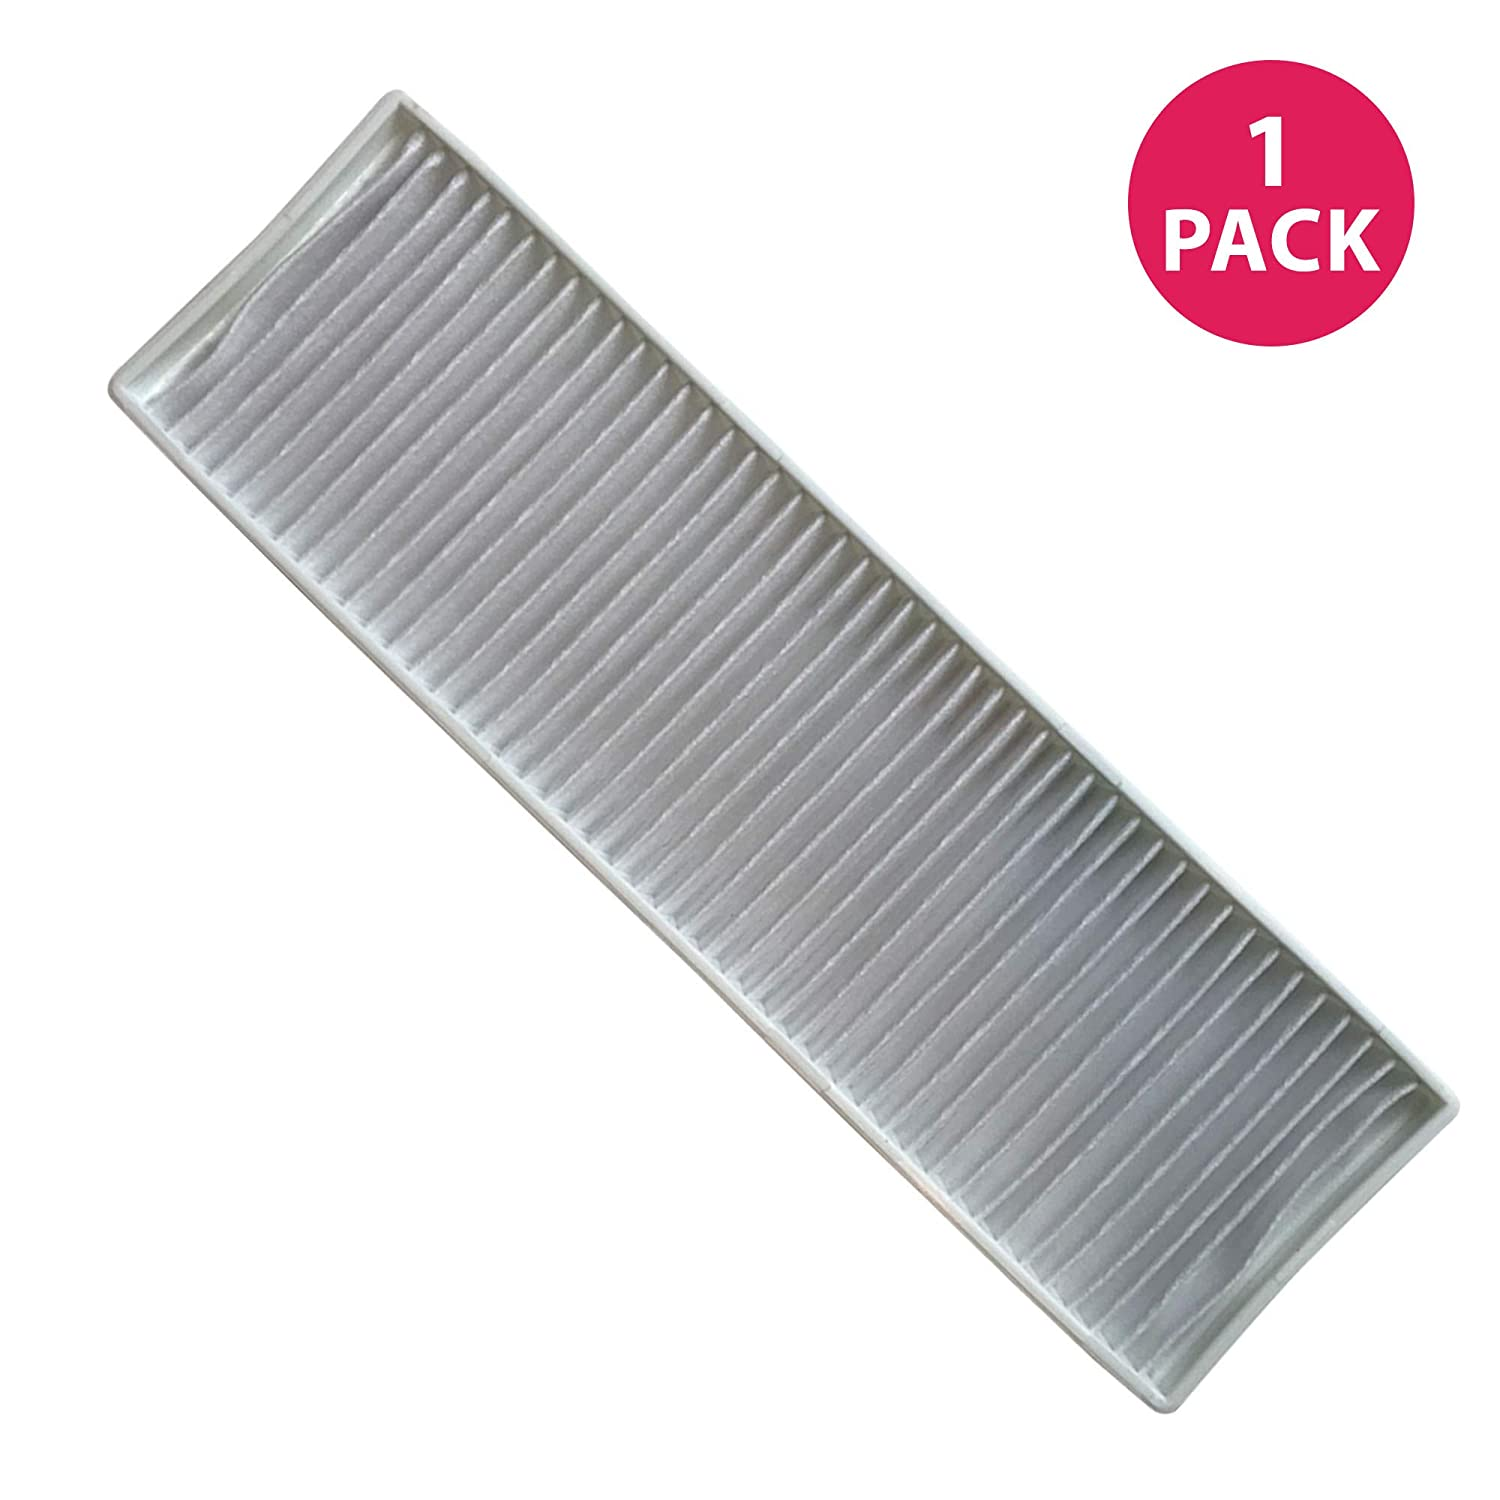 Think Crucial Replacement Air Filter Compatible with Bissell Style 7, 9 Filters - HEPA Style Filter Parts For Models 3595X, 35961, 6591 - Pair with Part 32076, 921, F921 - Bulk (1 Pack)